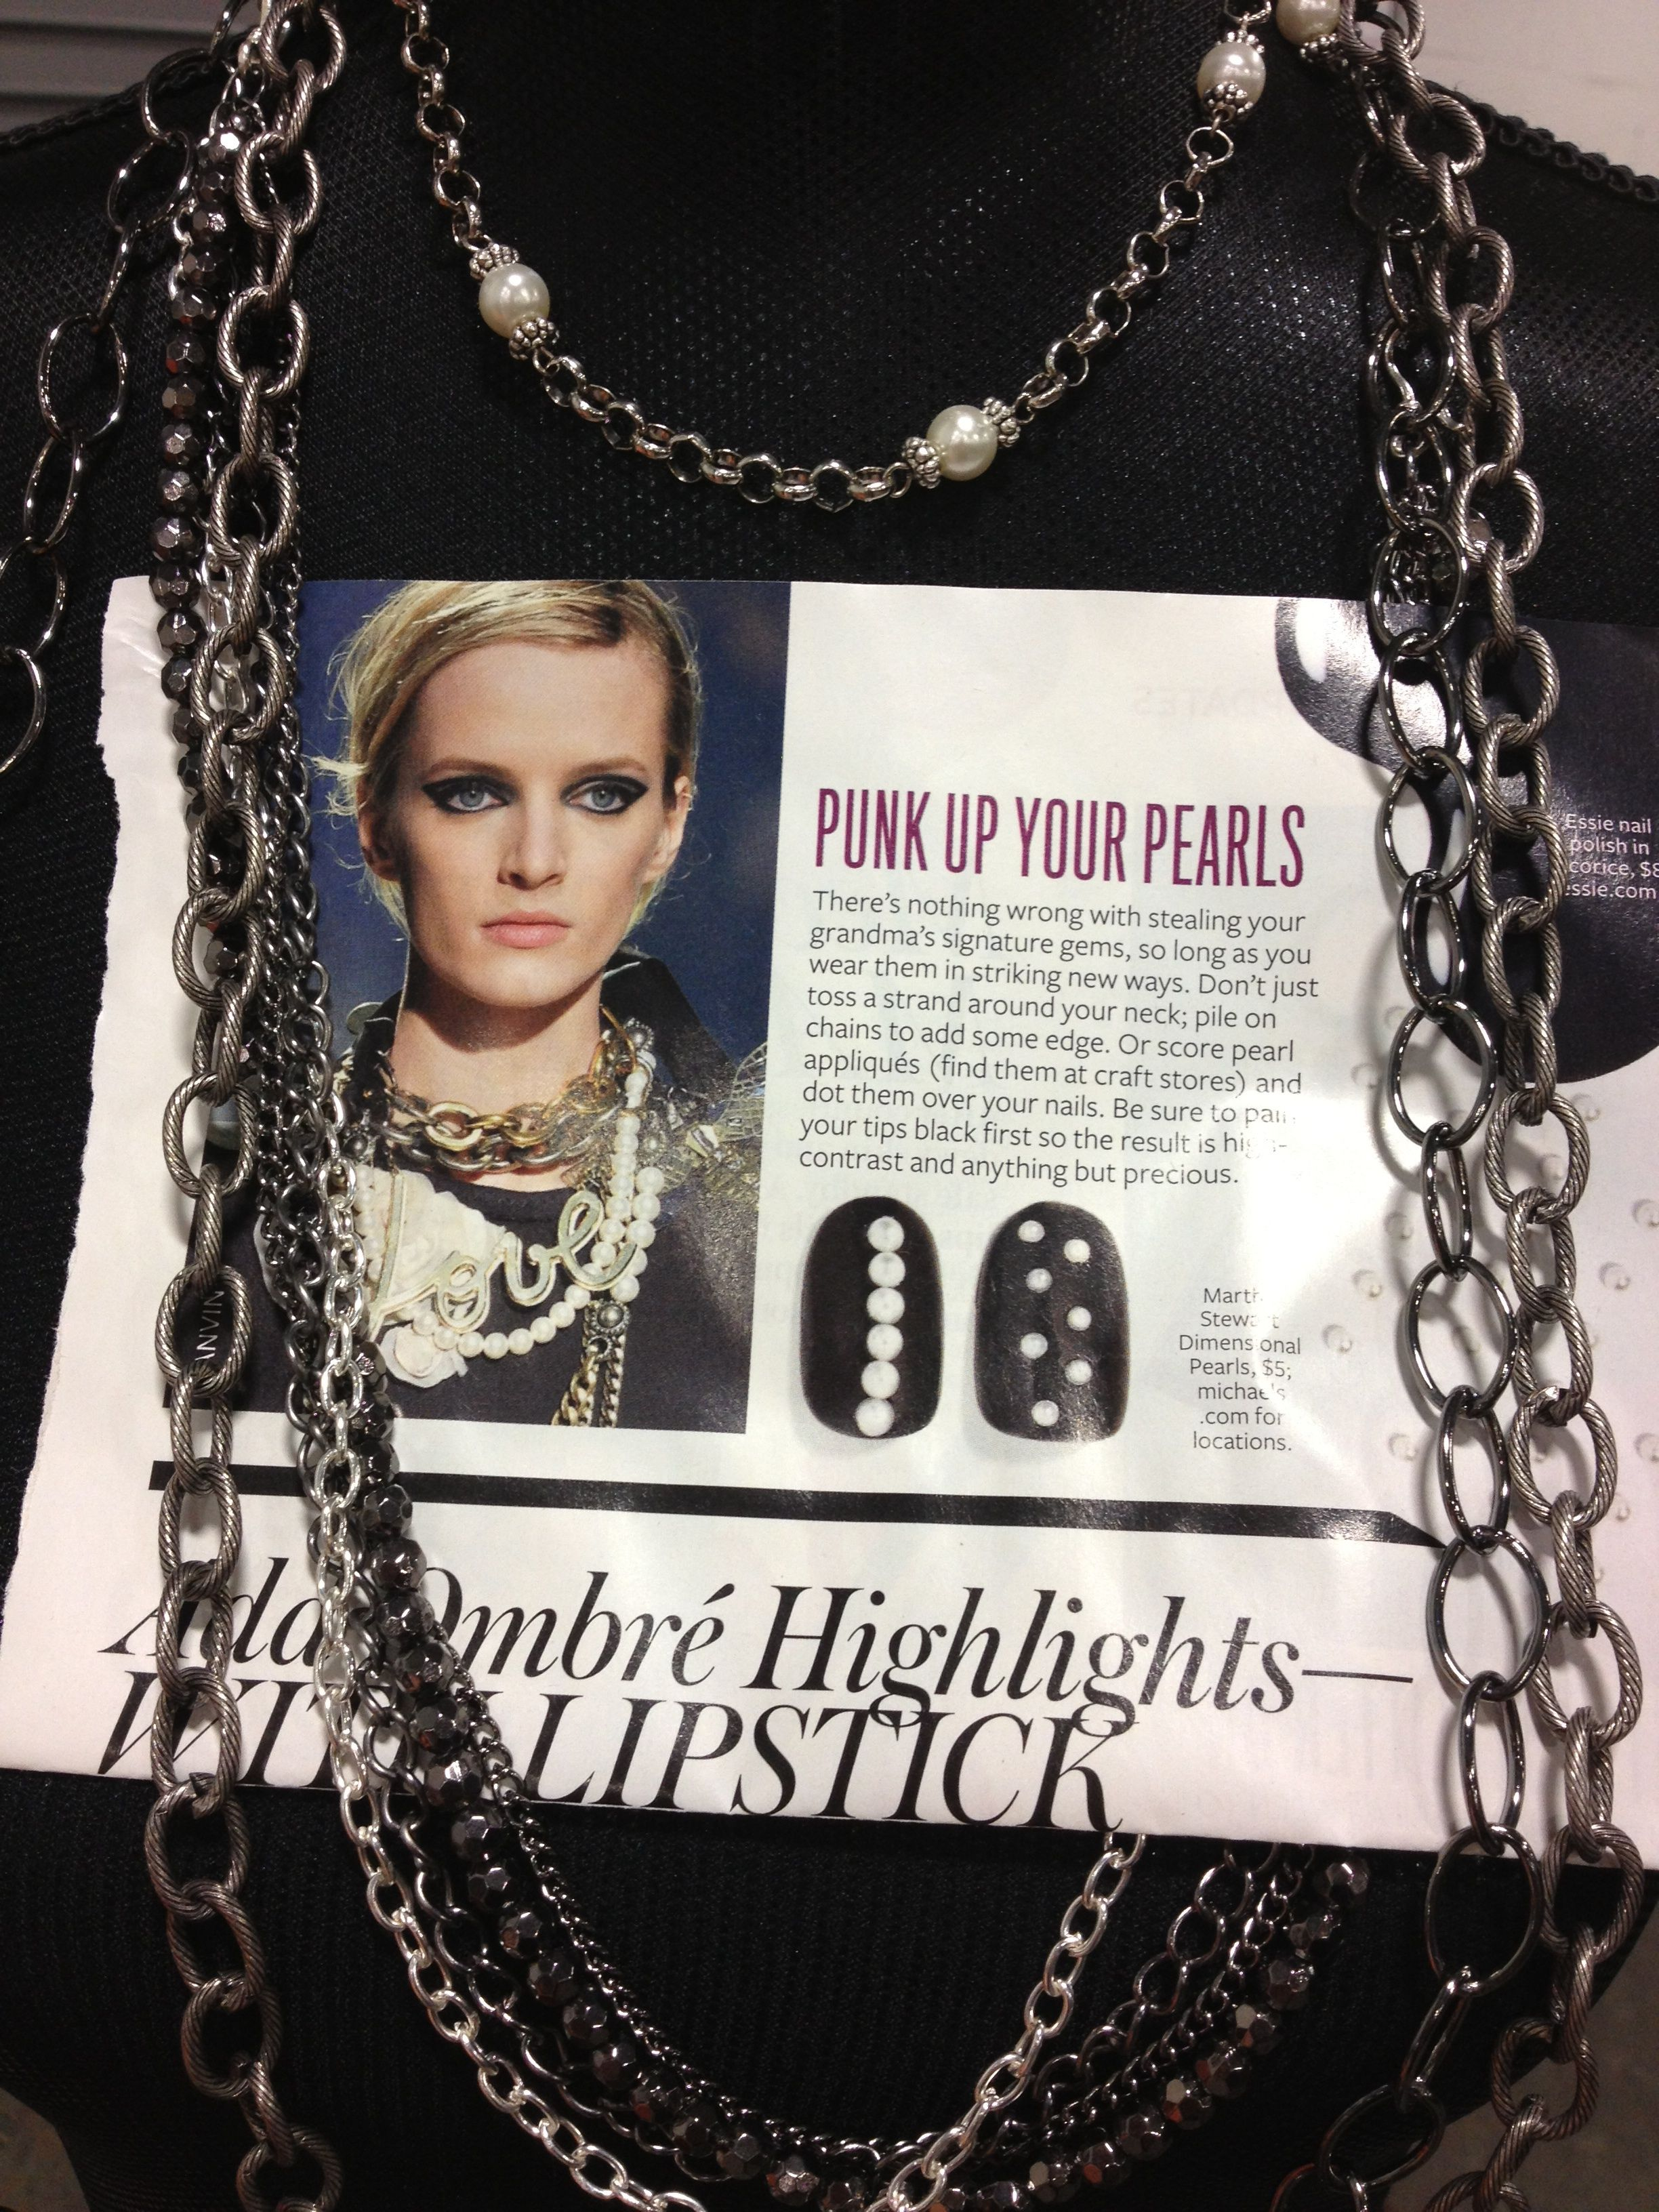 Pin By Autumn Lexer On Mialisia Pearls Craft Stores Punk